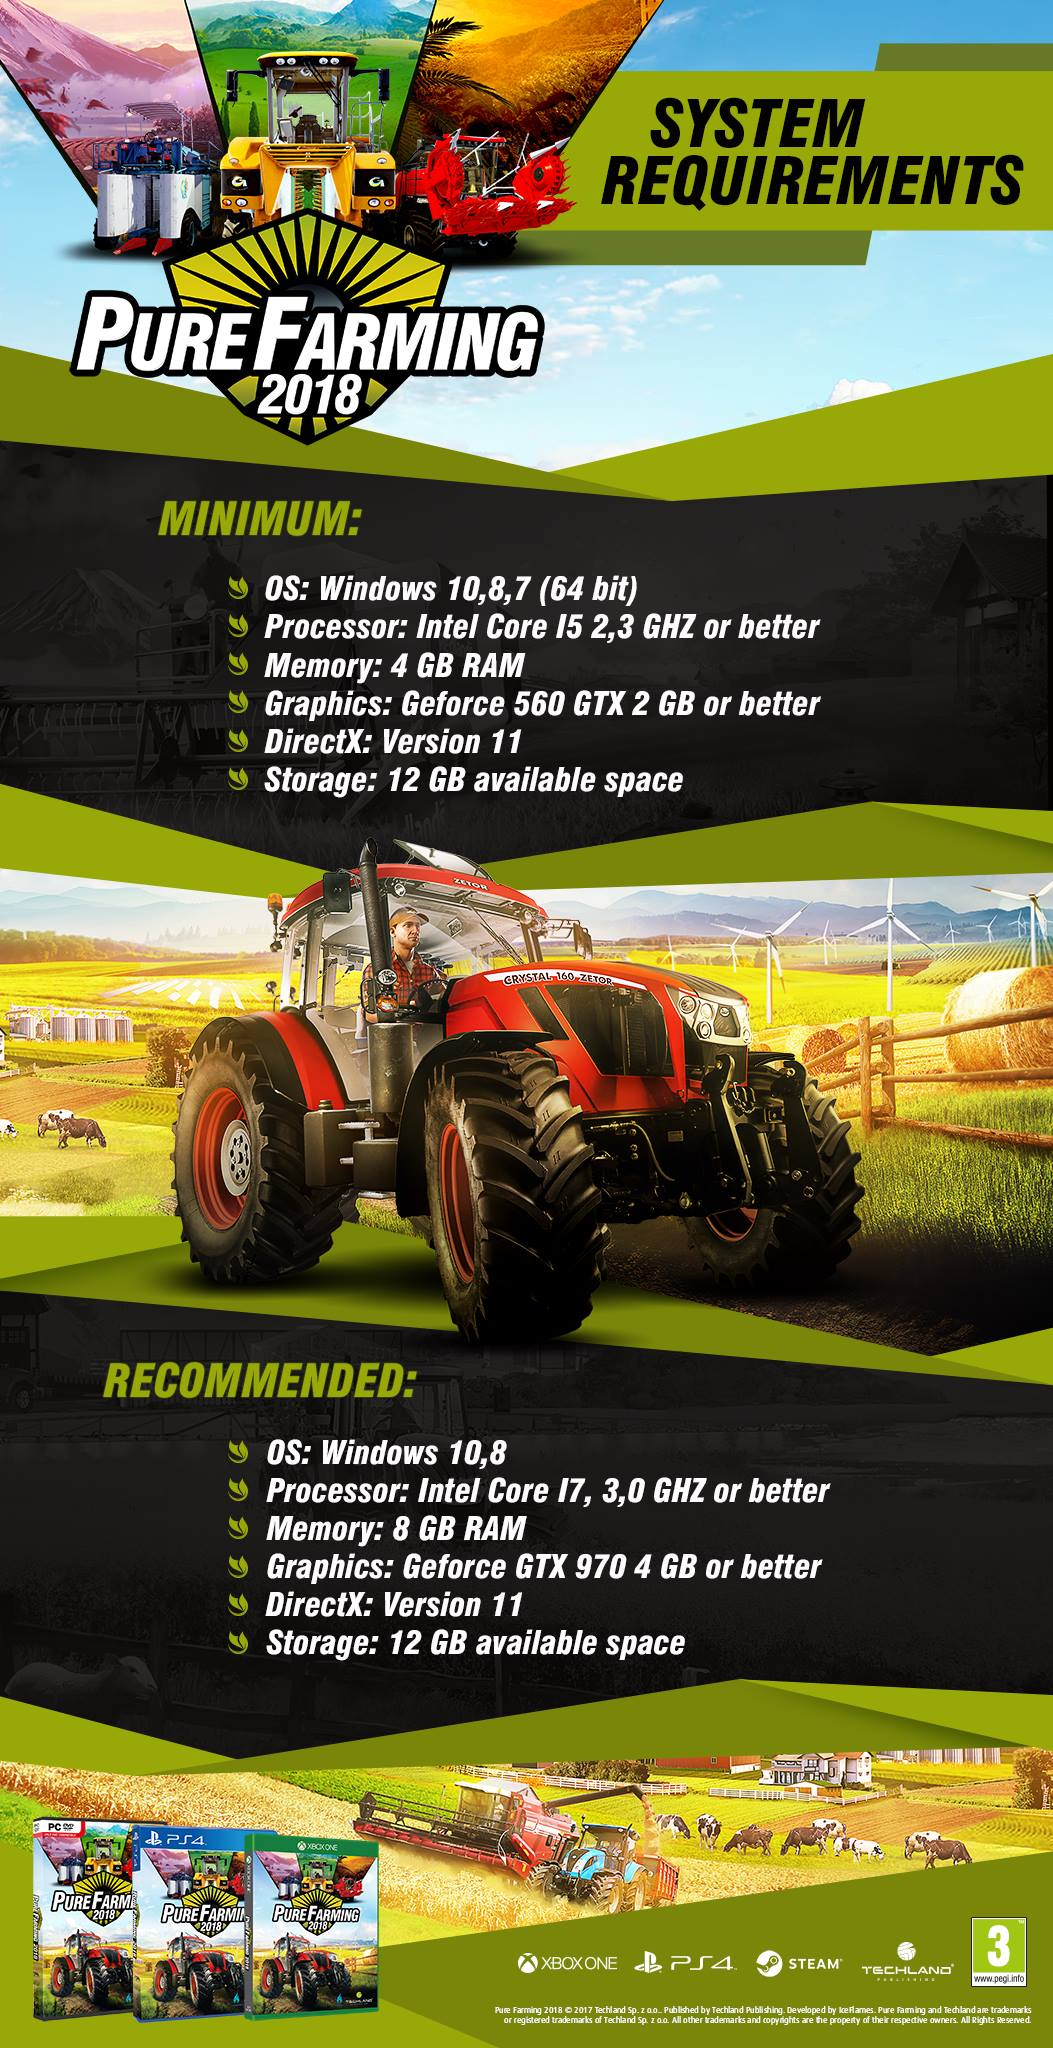 Pure Farming 2018 system requirements - Pure Farming 2018 Mod